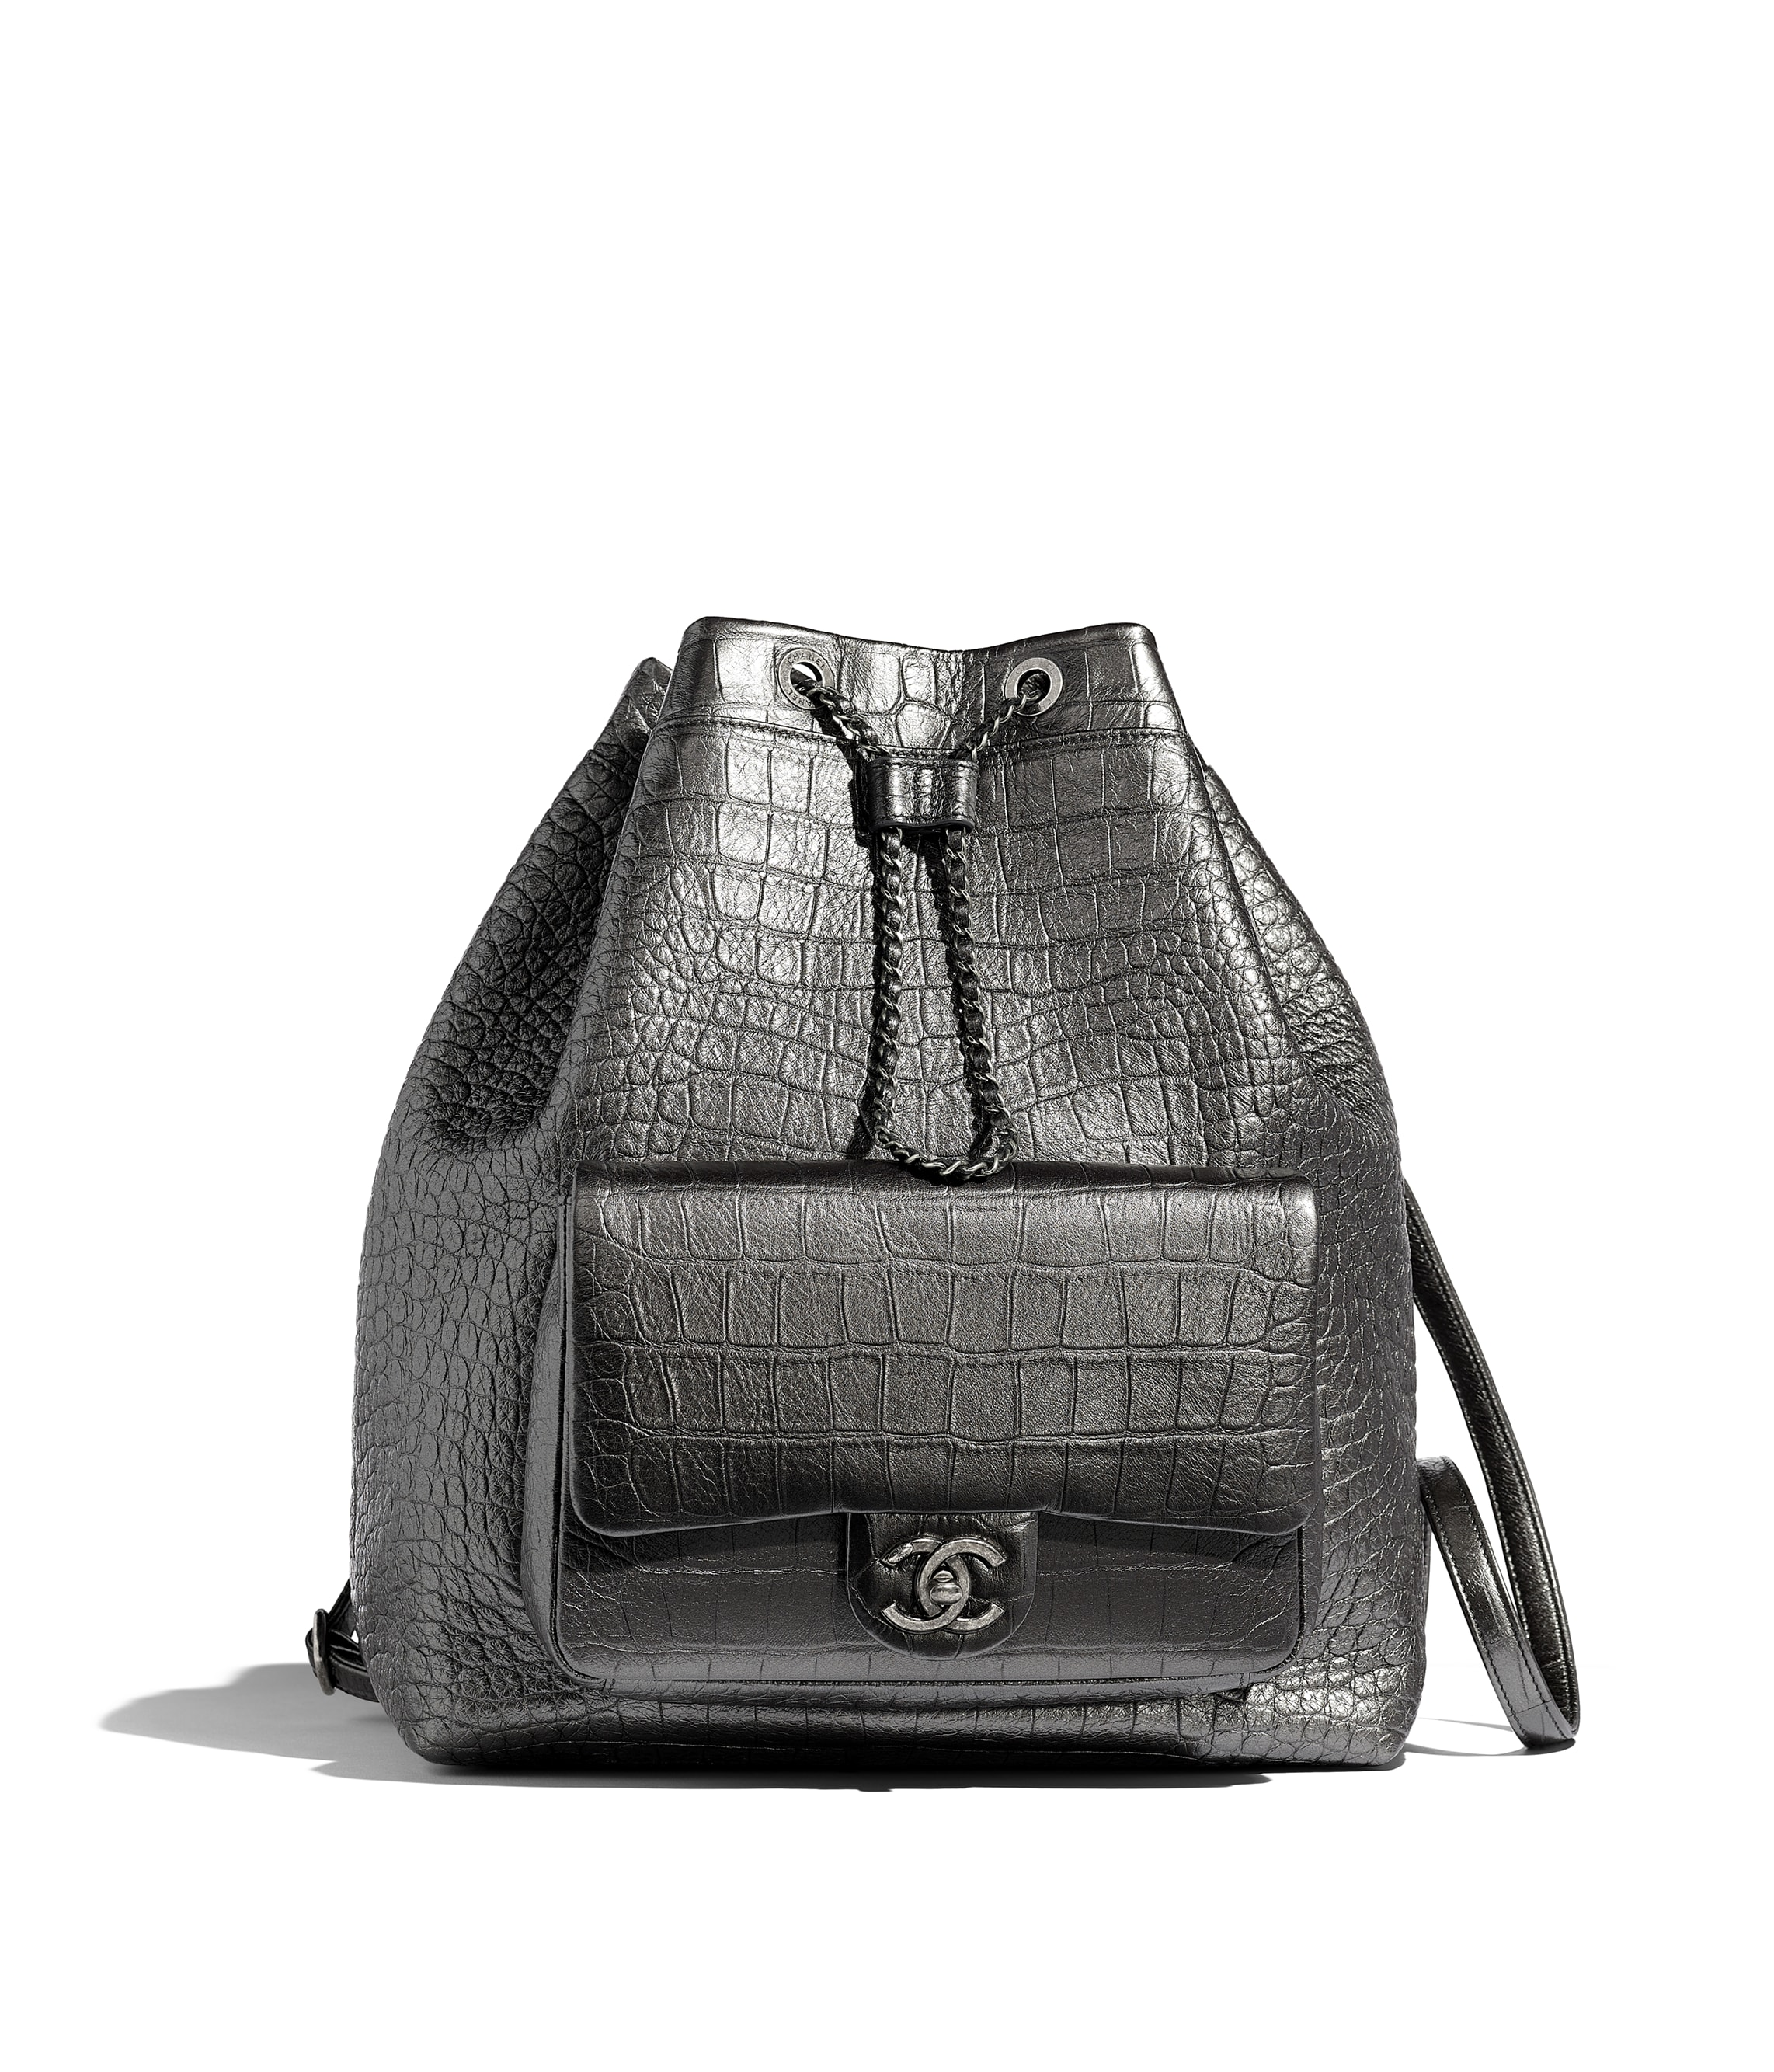 6df8801a30 Handbags - CHANEL